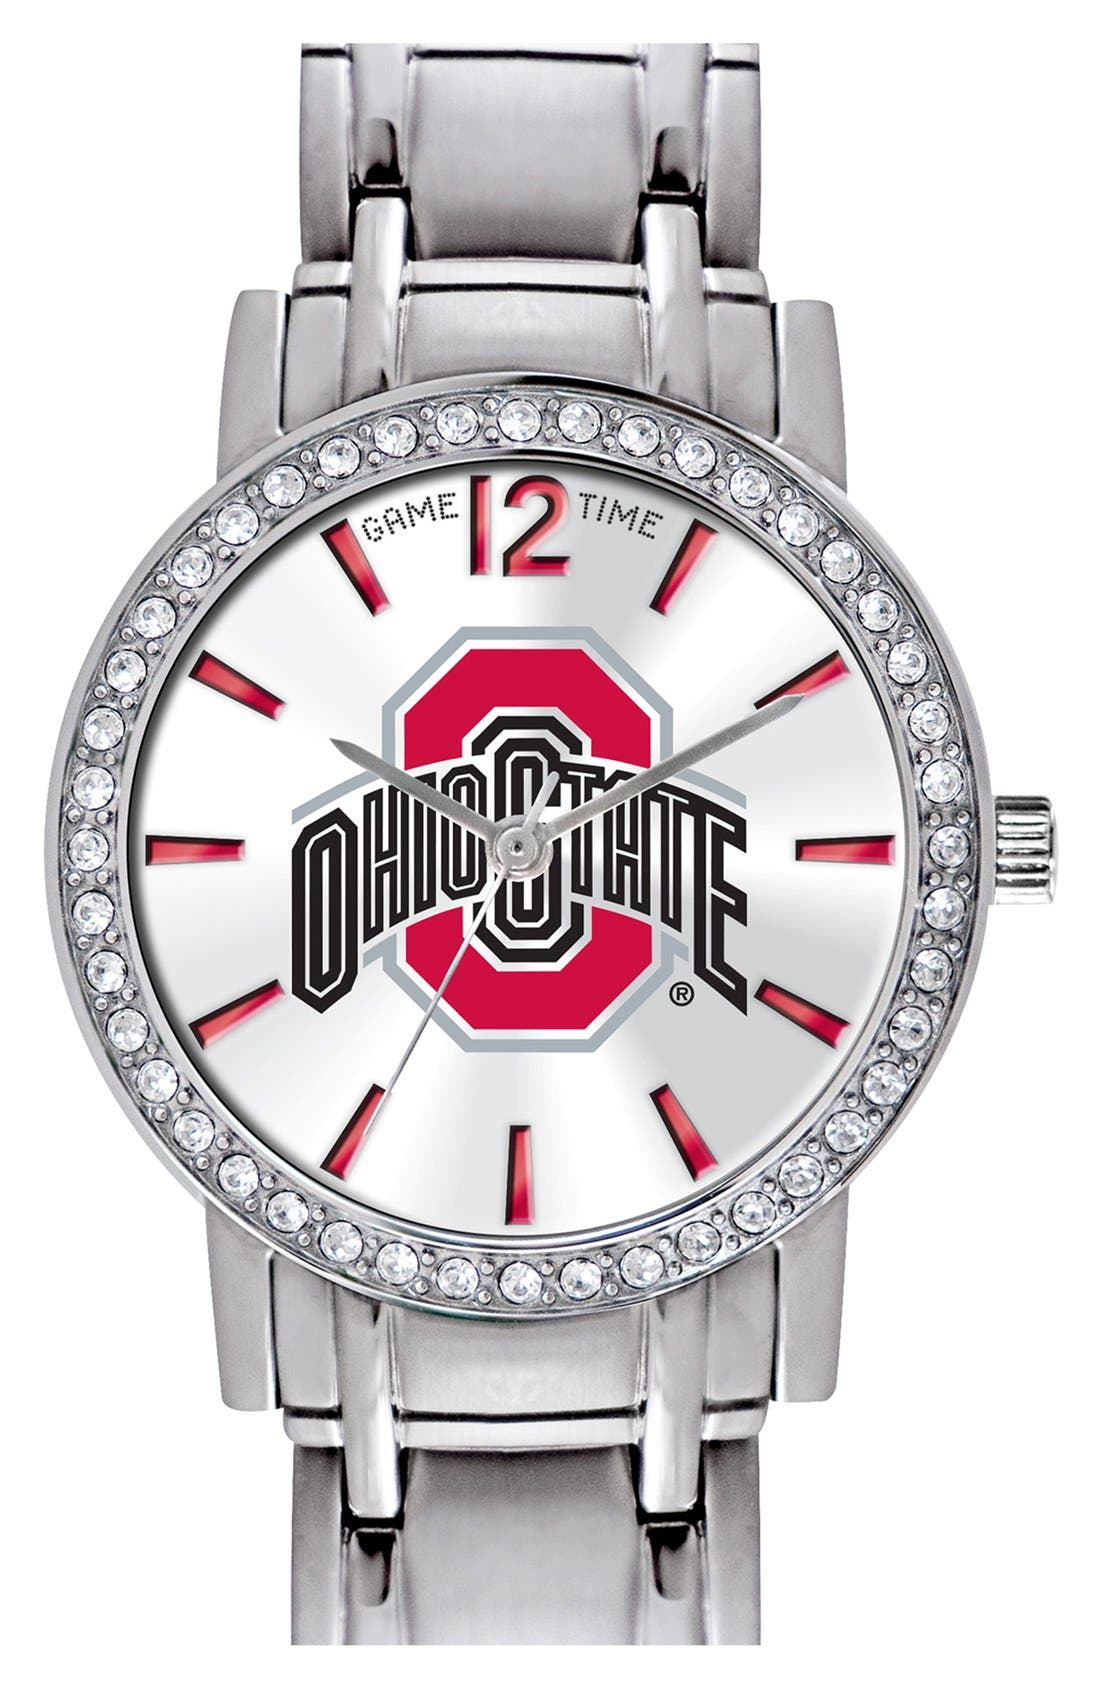 Alternate Image 1 Selected - Game Time Watches 'College All Star - Ohio State University' Crystal Bezel Bracelet Watch, 32mm